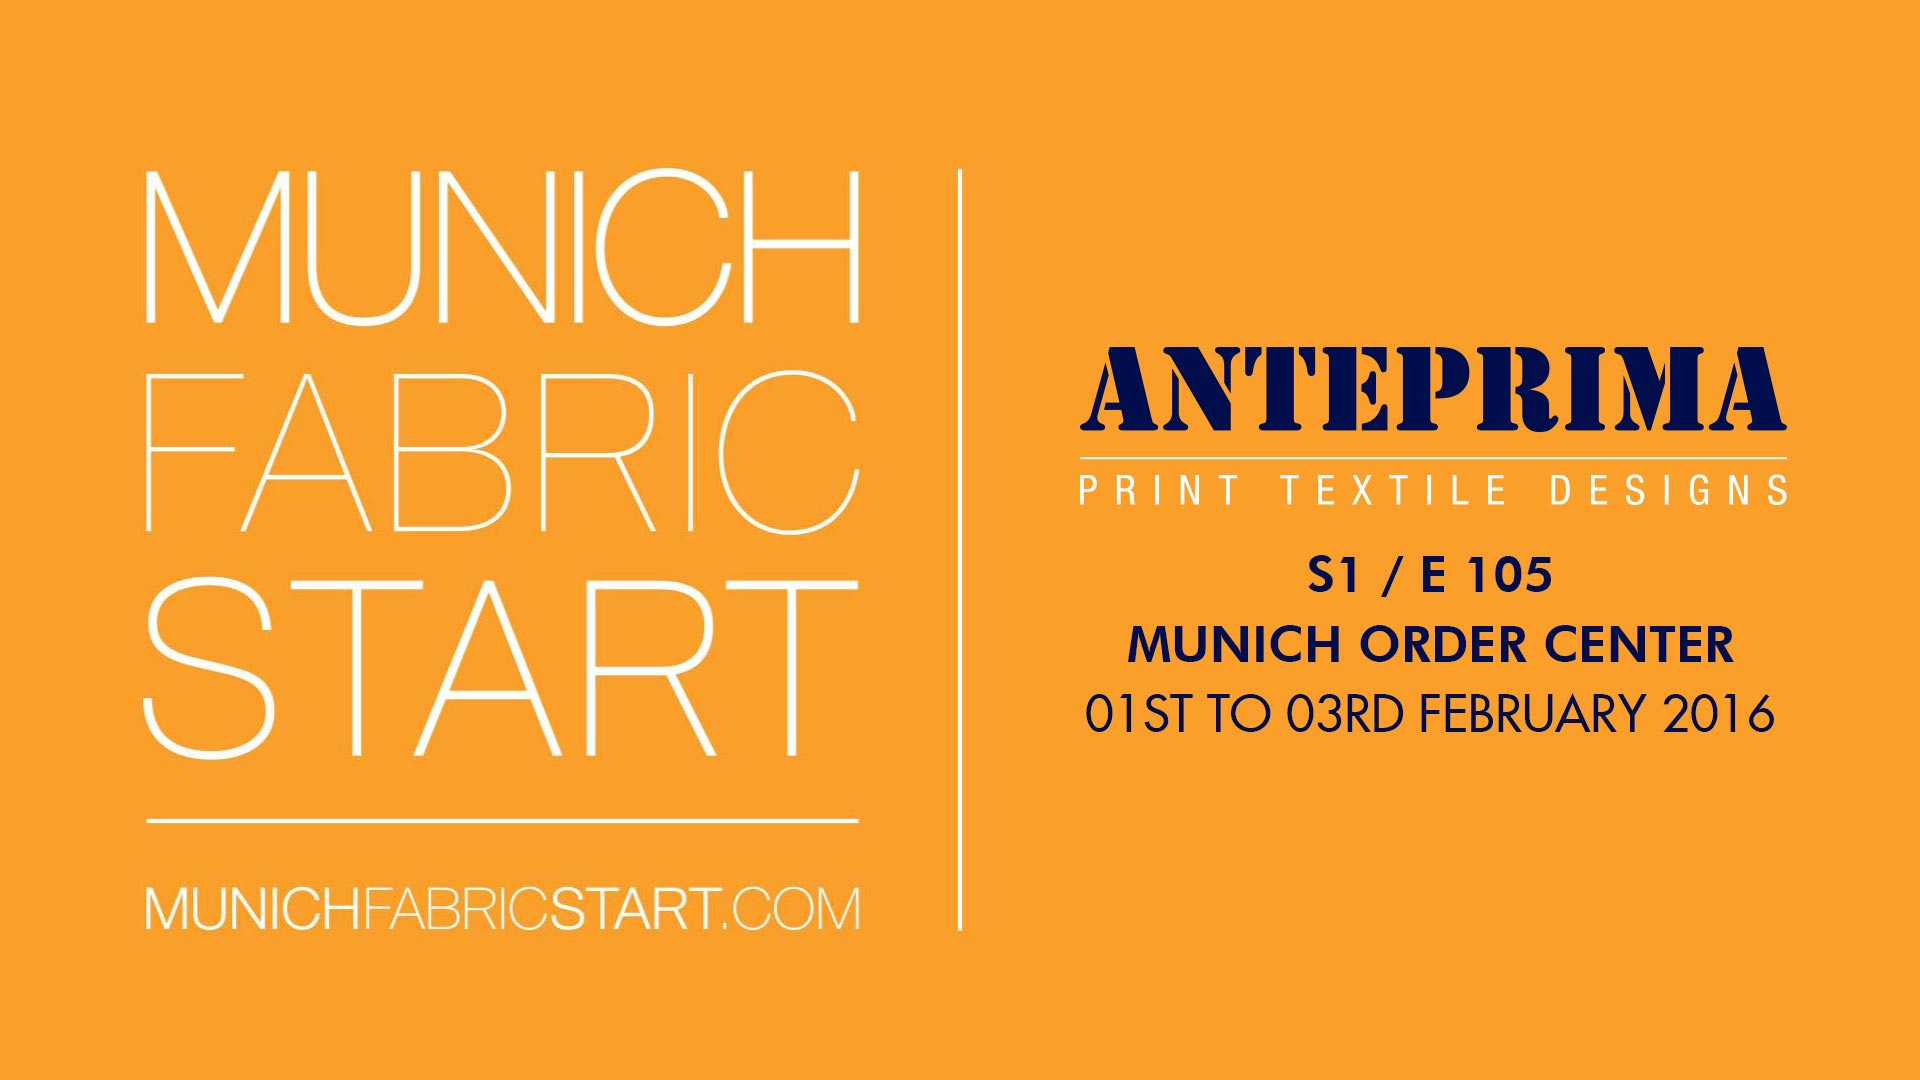 Anteprima @ Munich Fabric Start